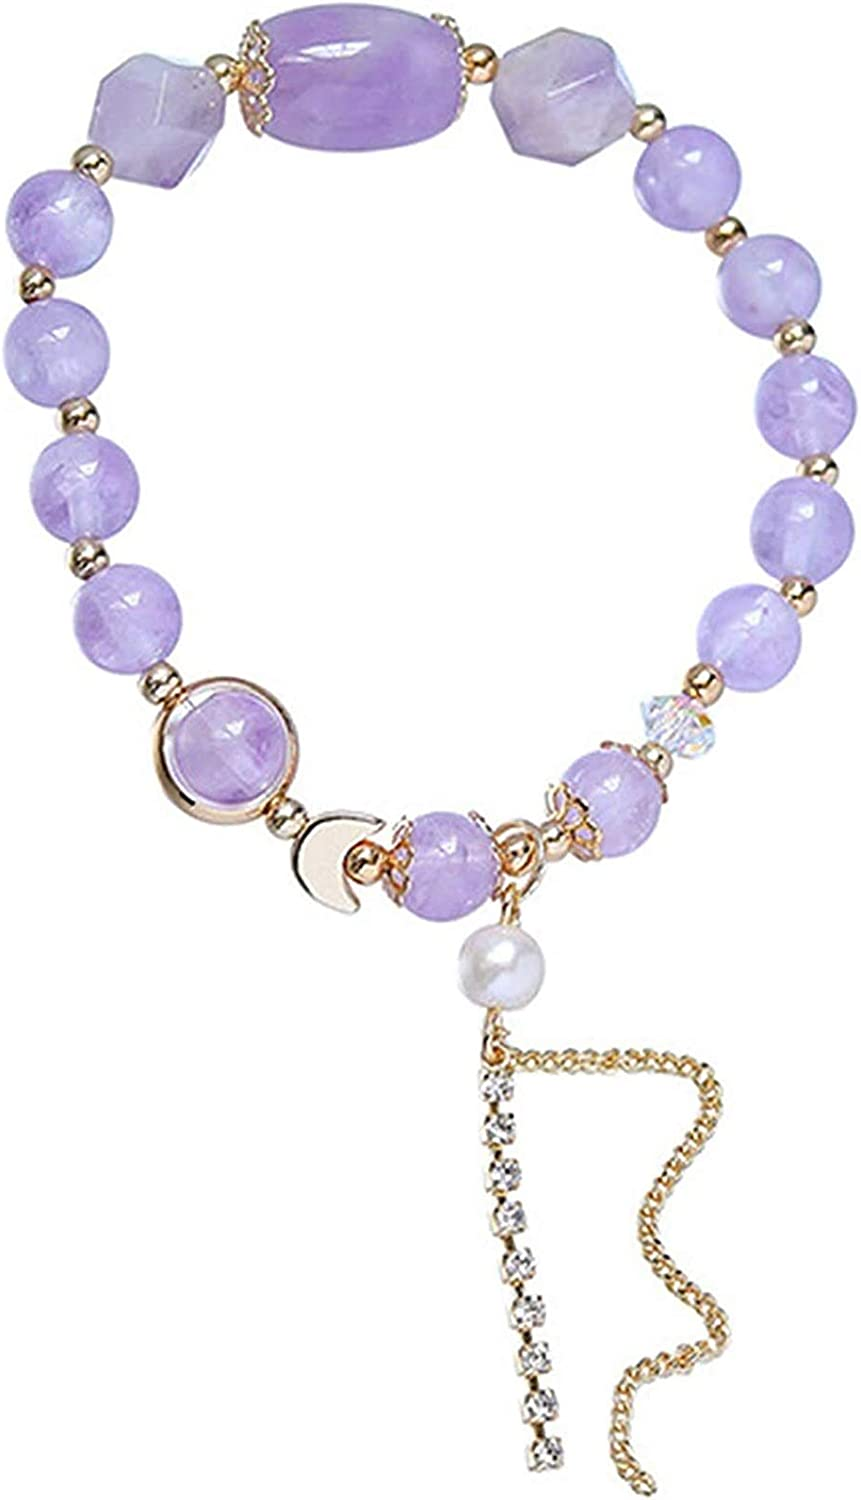 Plztou Feng Shui Ranking TOP1 Bracelet Natural Pearl Crystal Purple Jade Moon Super beauty product restock quality top